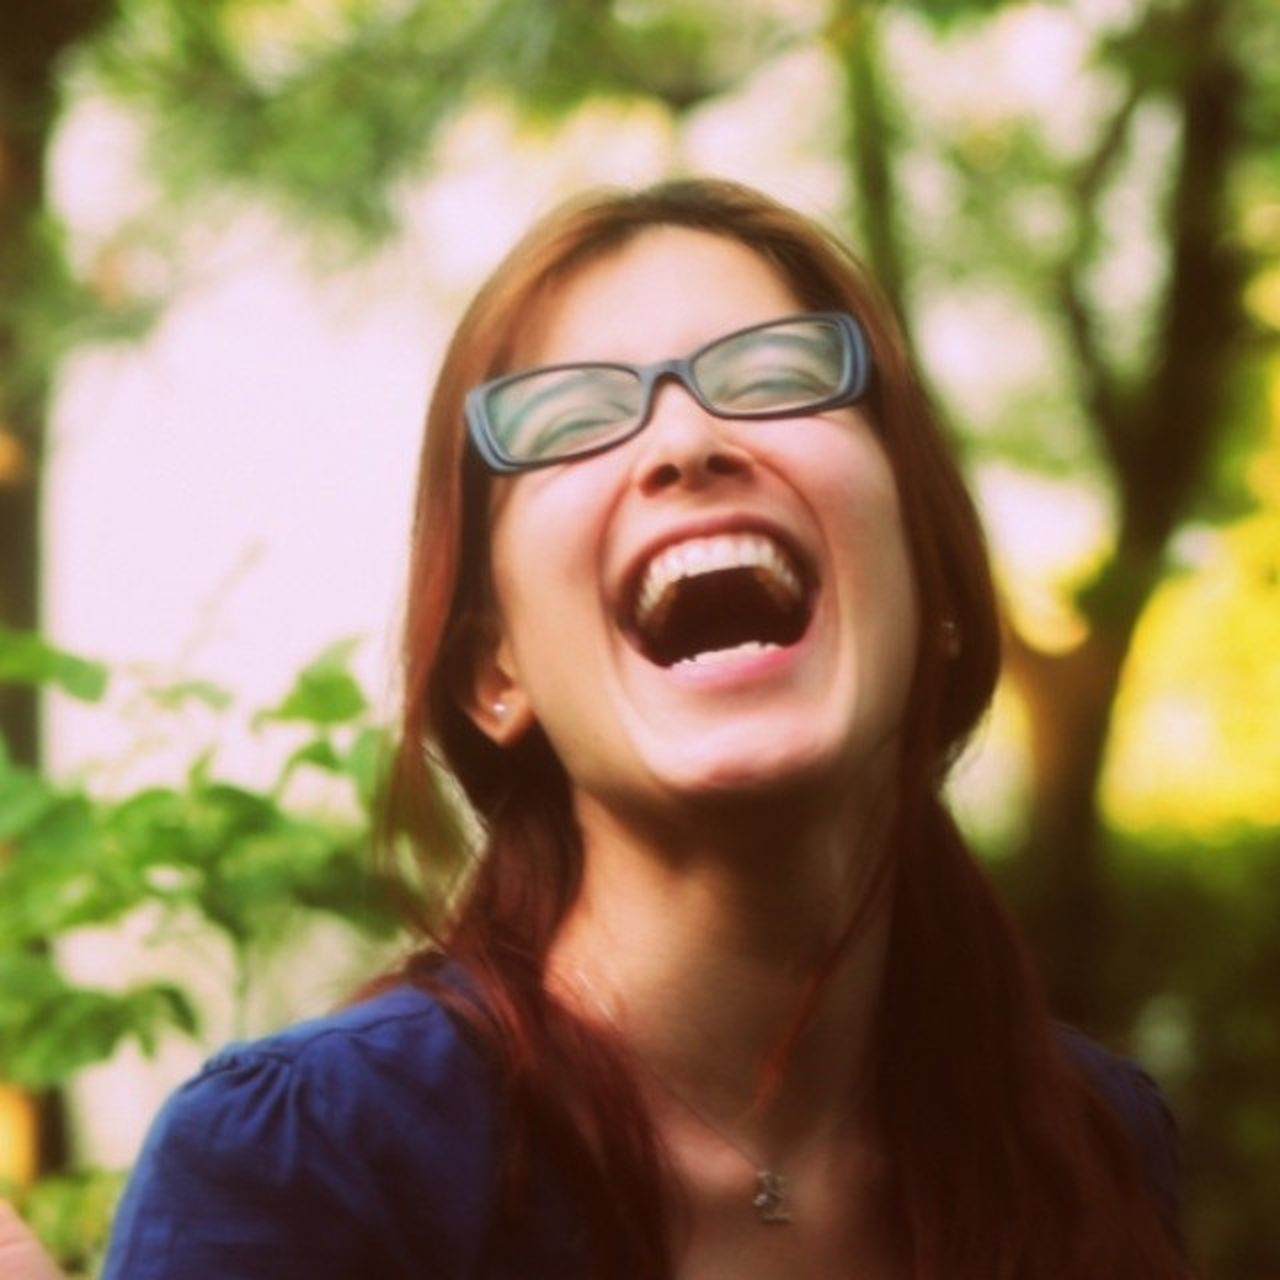 front view, focus on foreground, eyeglasses, one person, mouth open, real people, outdoors, tree, headshot, young adult, happiness, day, close-up, young women, smiling, one young woman only, nature, people, adult, adults only